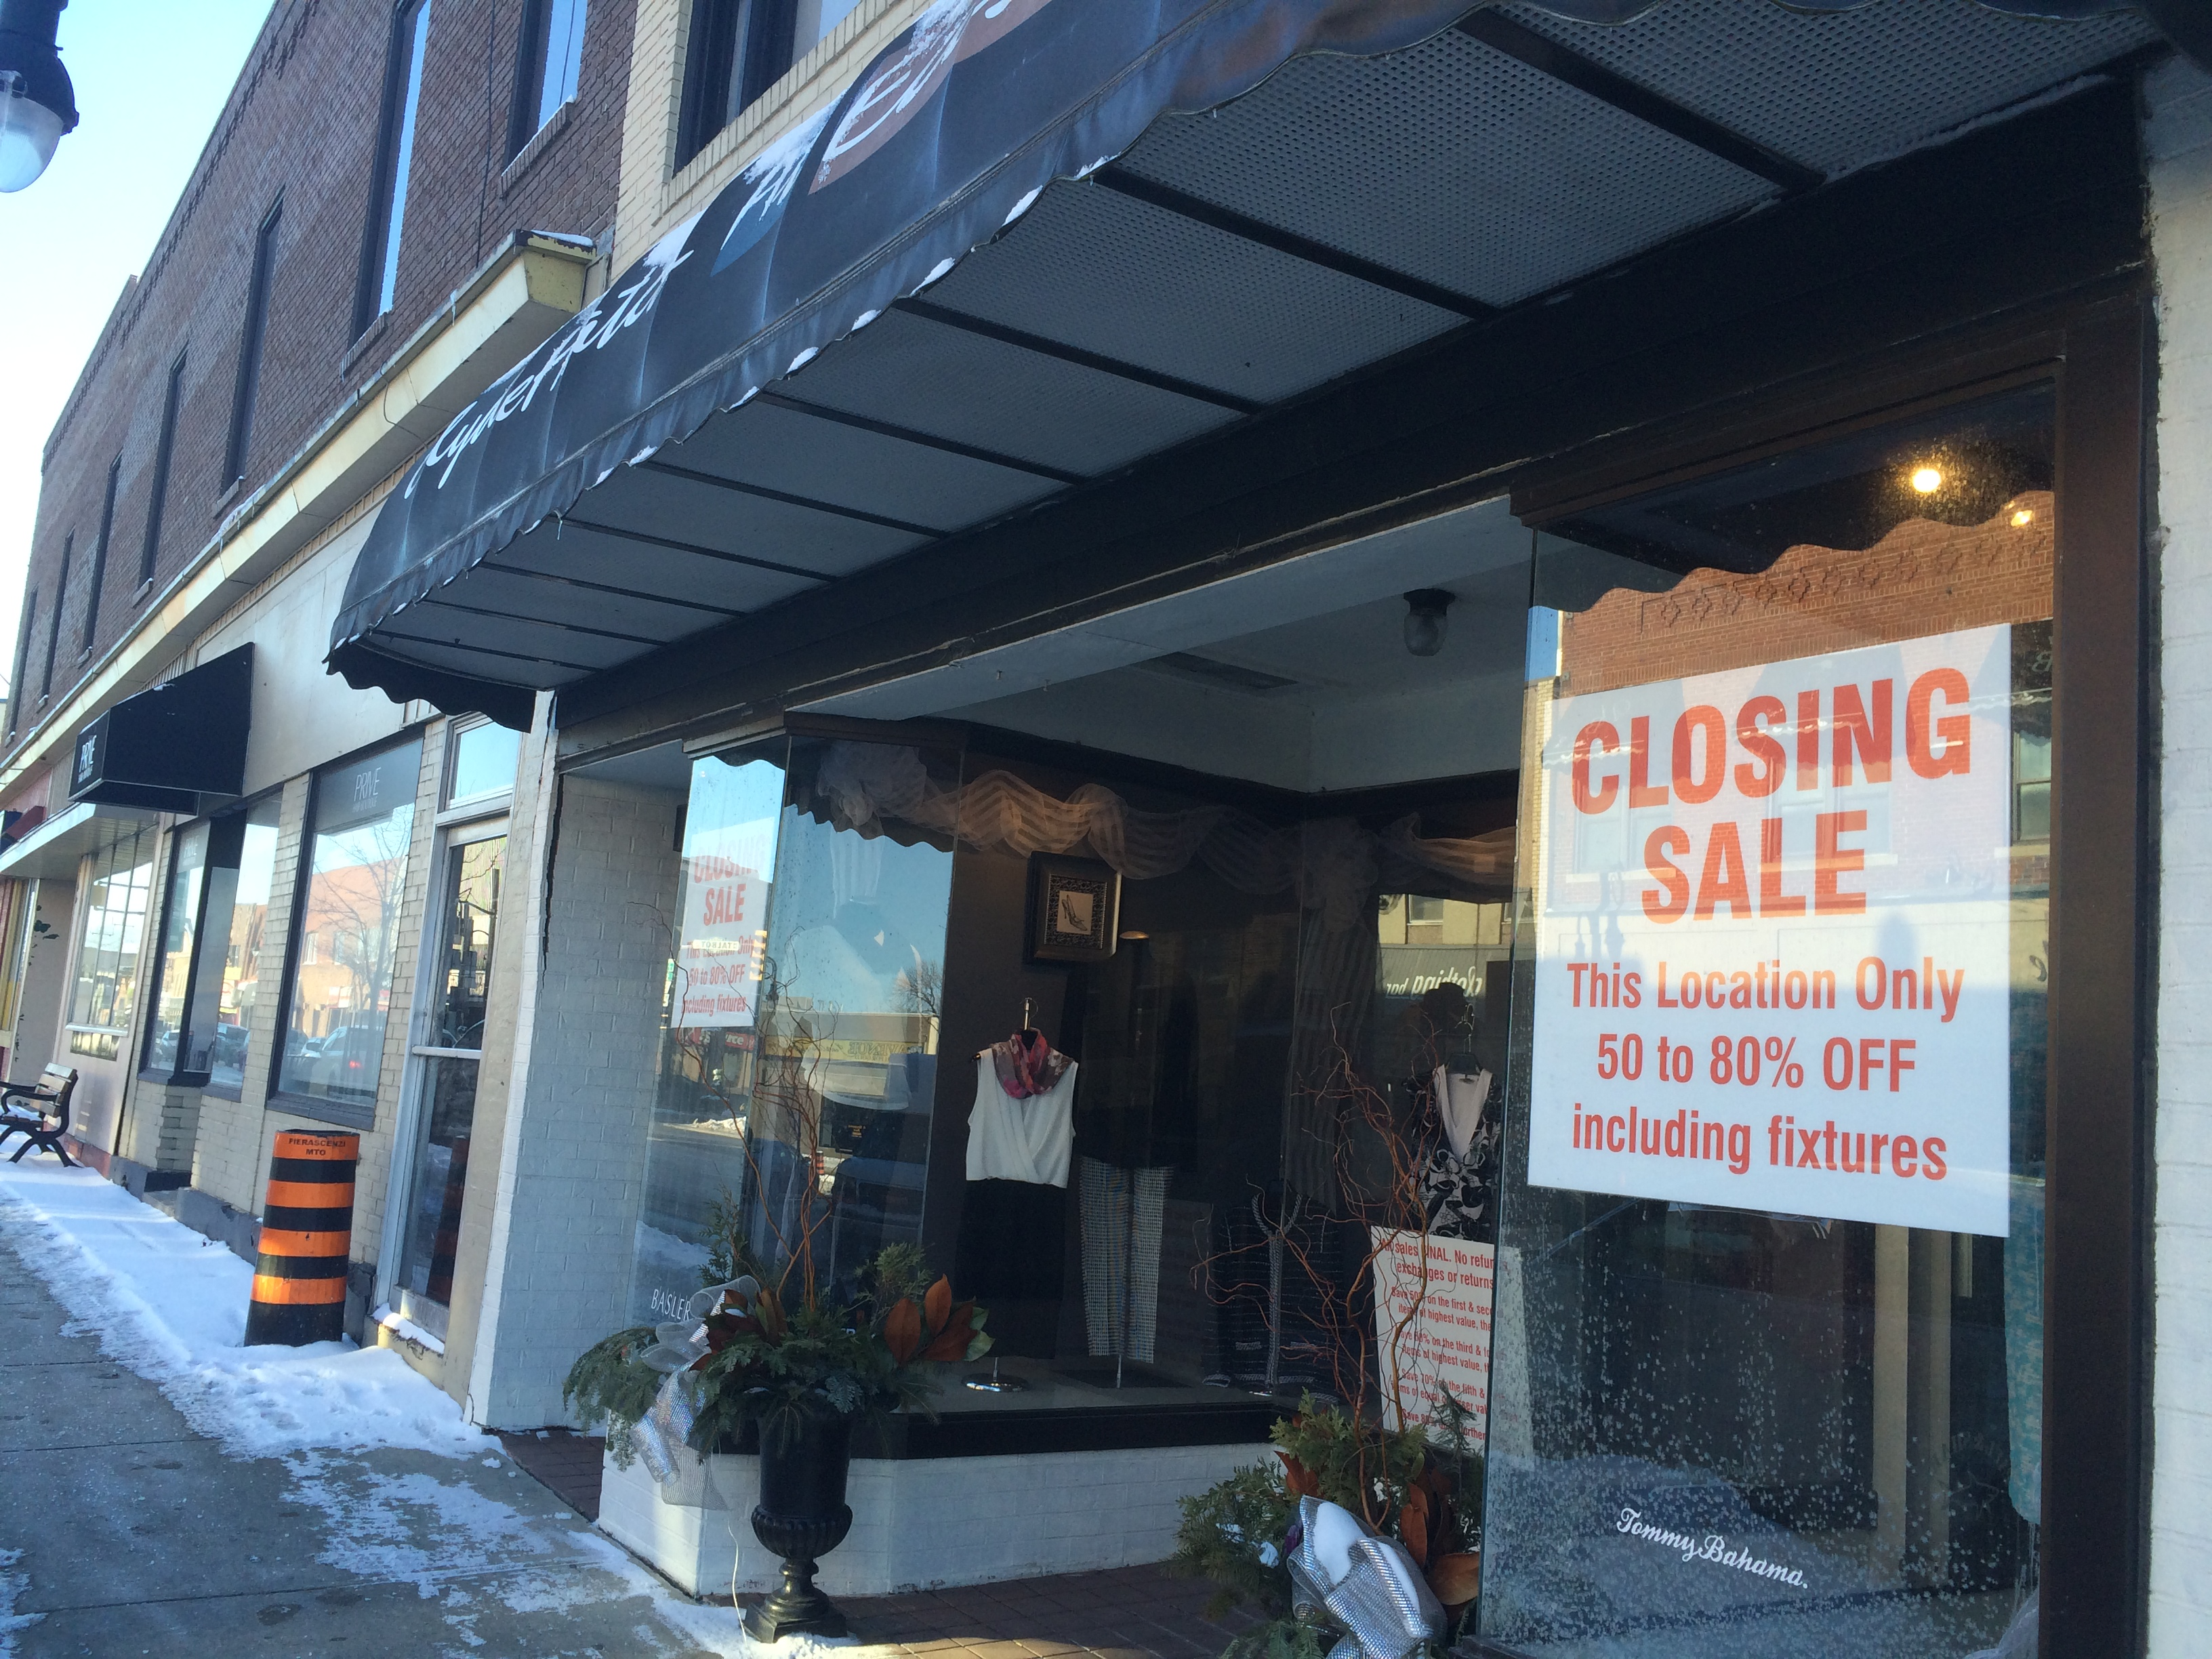 The Leamington location of Clyde Hatch At Ease is seen on January 13, 2015. The store is set to close after over 90 years in uptown Leamington. (Photo by Ricardo Veneza)